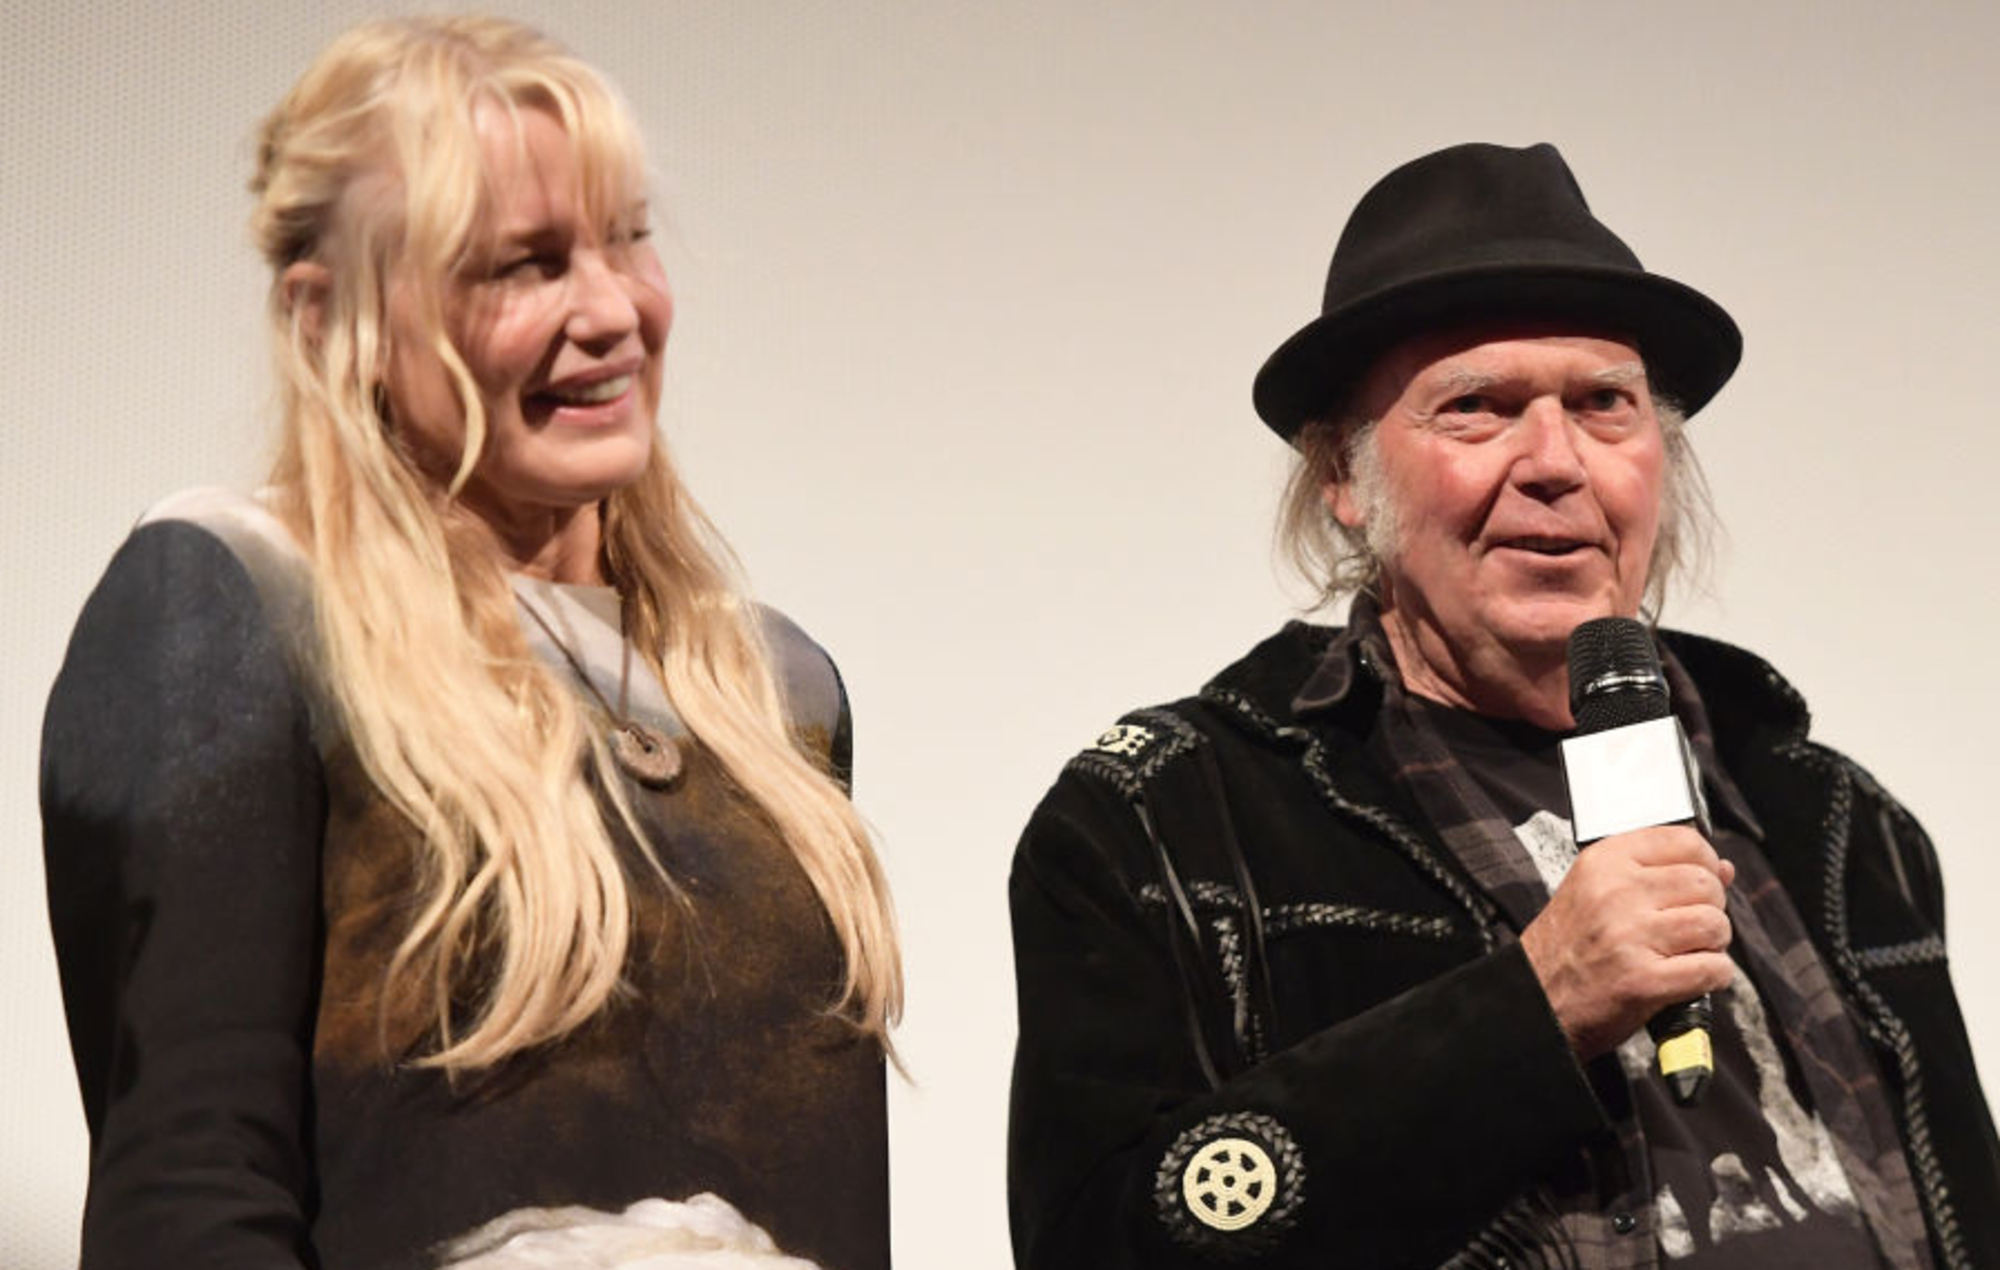 Daryl Hannah and Neil Young